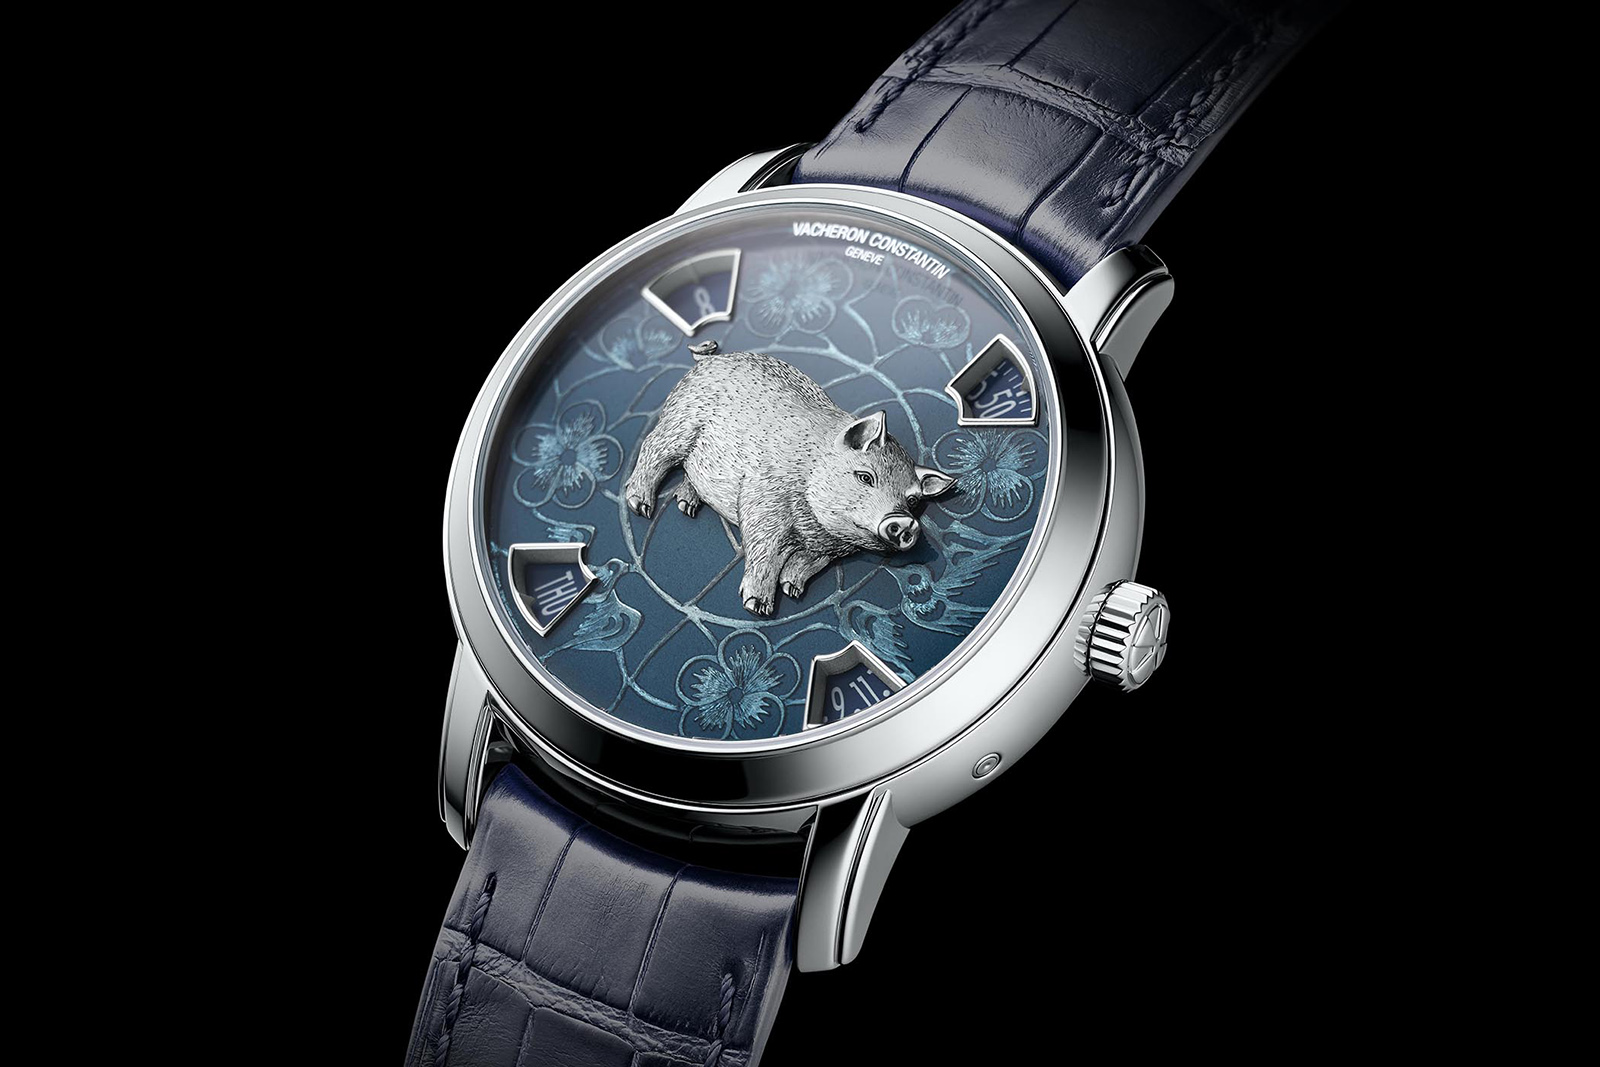 Vacheron Constantin 'Legend of the Chinese Zodiac' watch from the 'Métiers d'Art' collection with Grand Feu enamel in platinum and gold